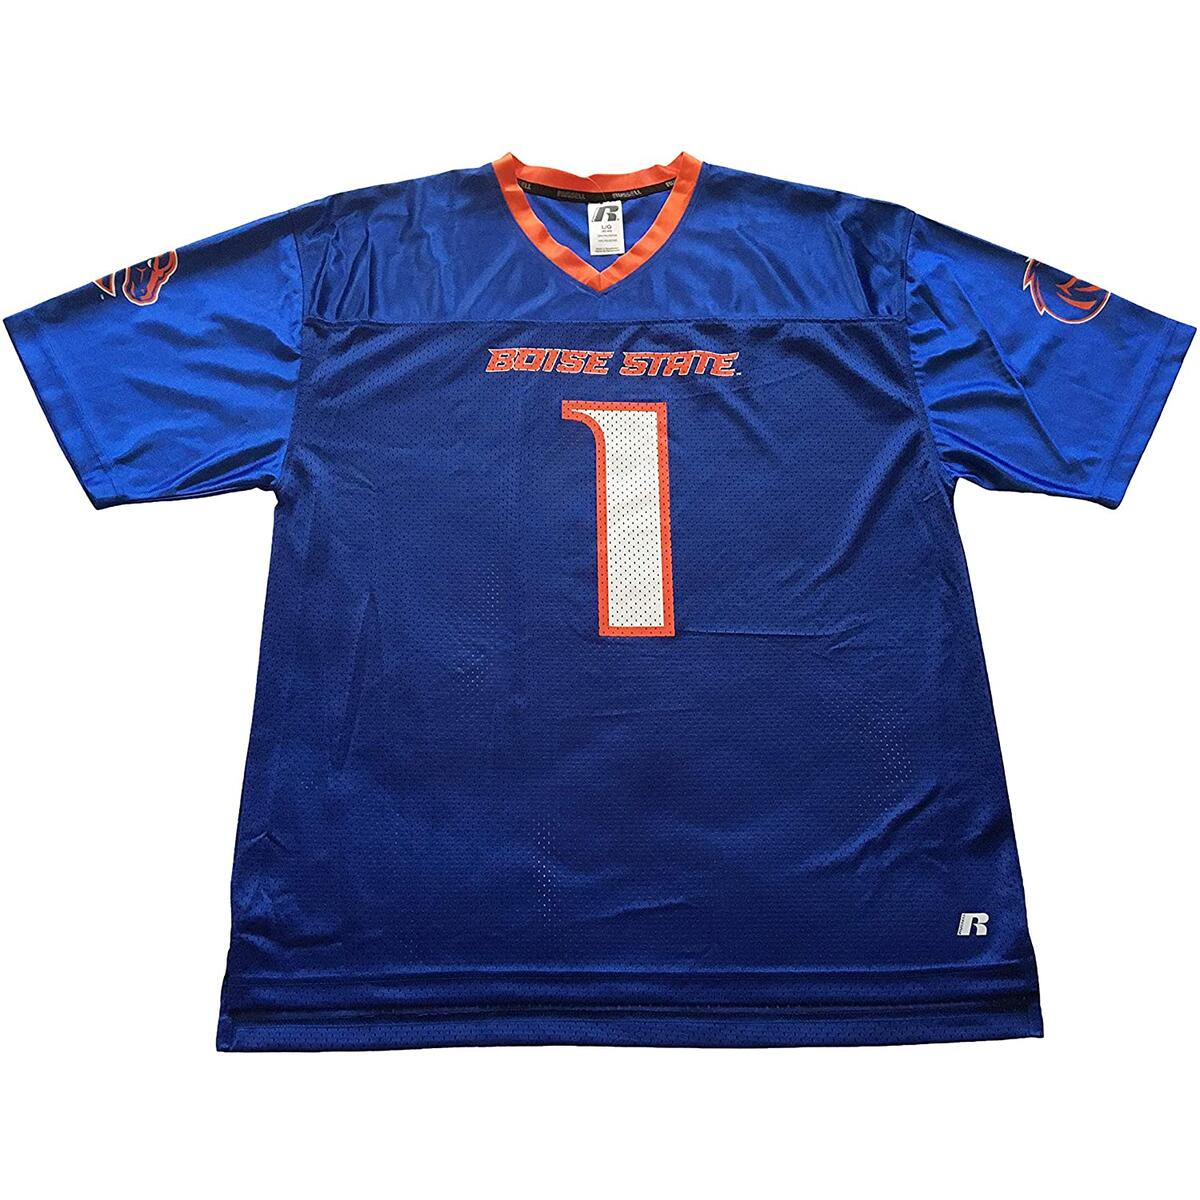 Russel Boise State Broncos Short Sleeve Mesh Fan Jersey #1 Blue and Orange (Large, Blue No Name)